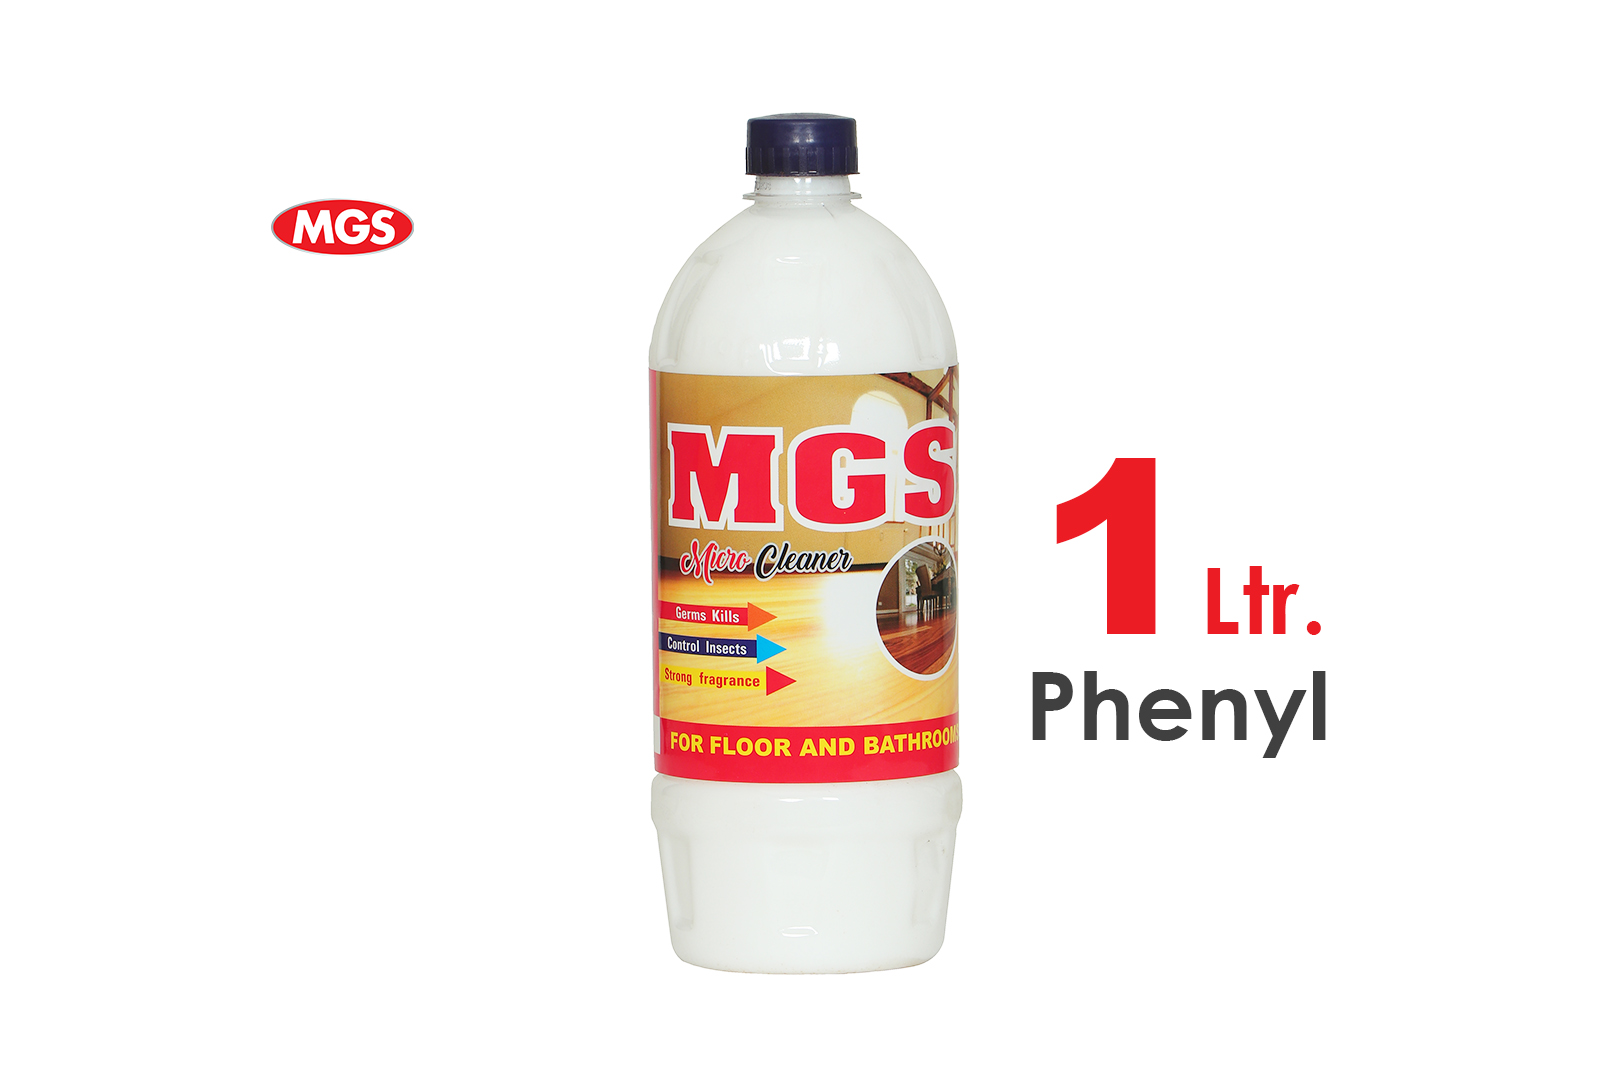 MGS Phenyl 1 Ltr. Micro Cleaner For Floors and Bathrooms